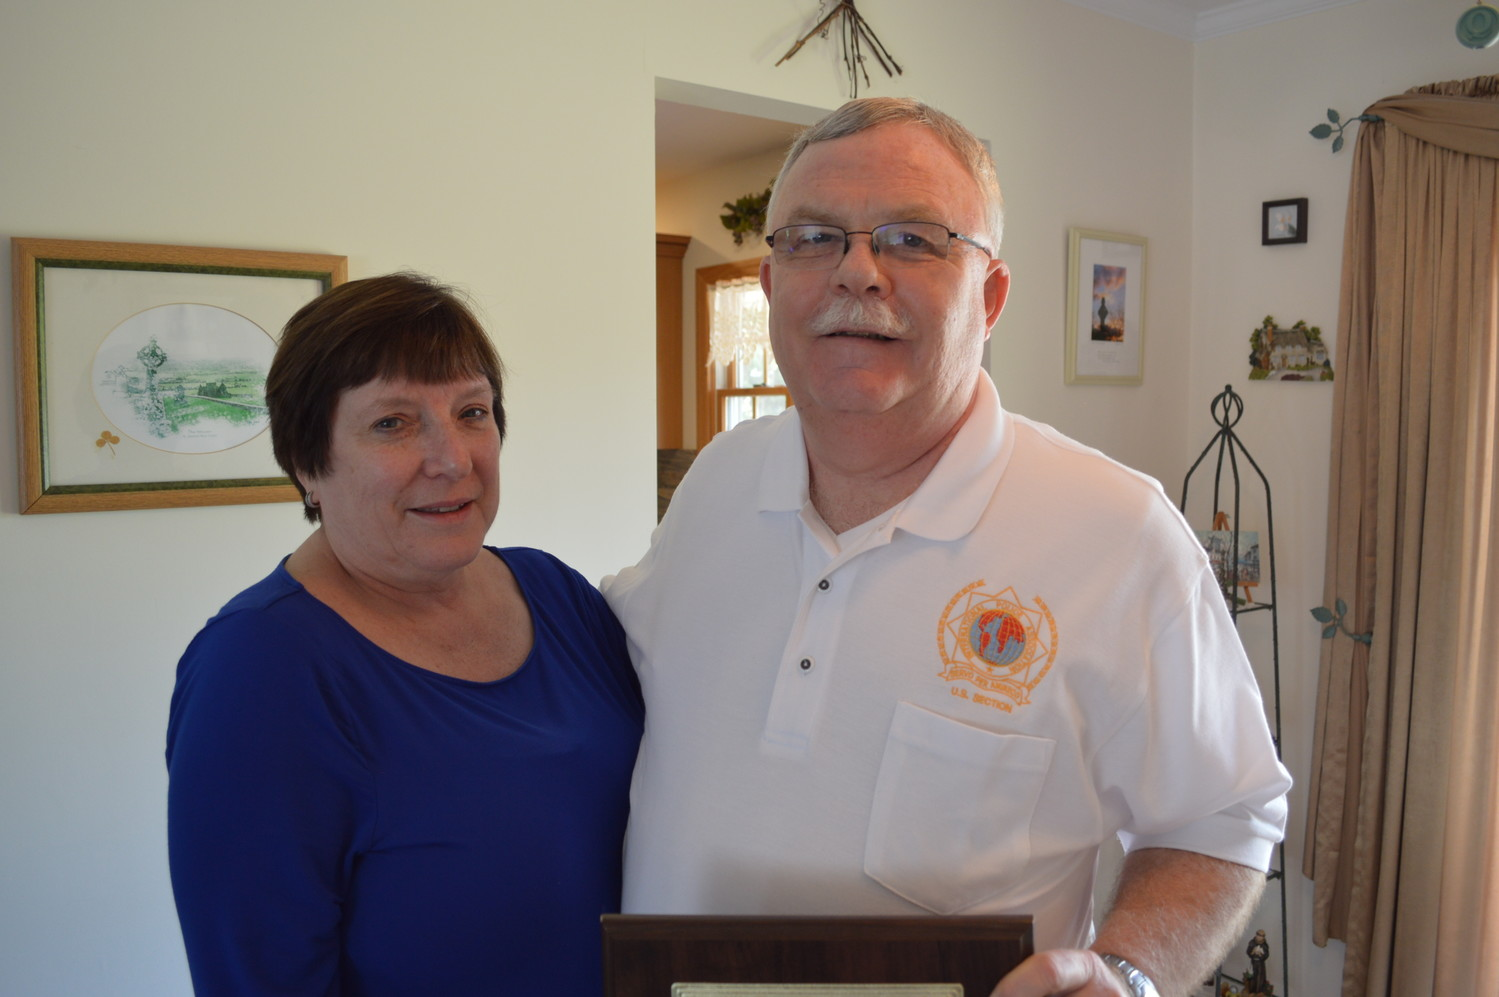 After 22 years working with Disaster Mortuary Operational Response Team 2, Kevin Costigan retired this spring. He is pictured with his wife, Kathy, at their Oceanside home.